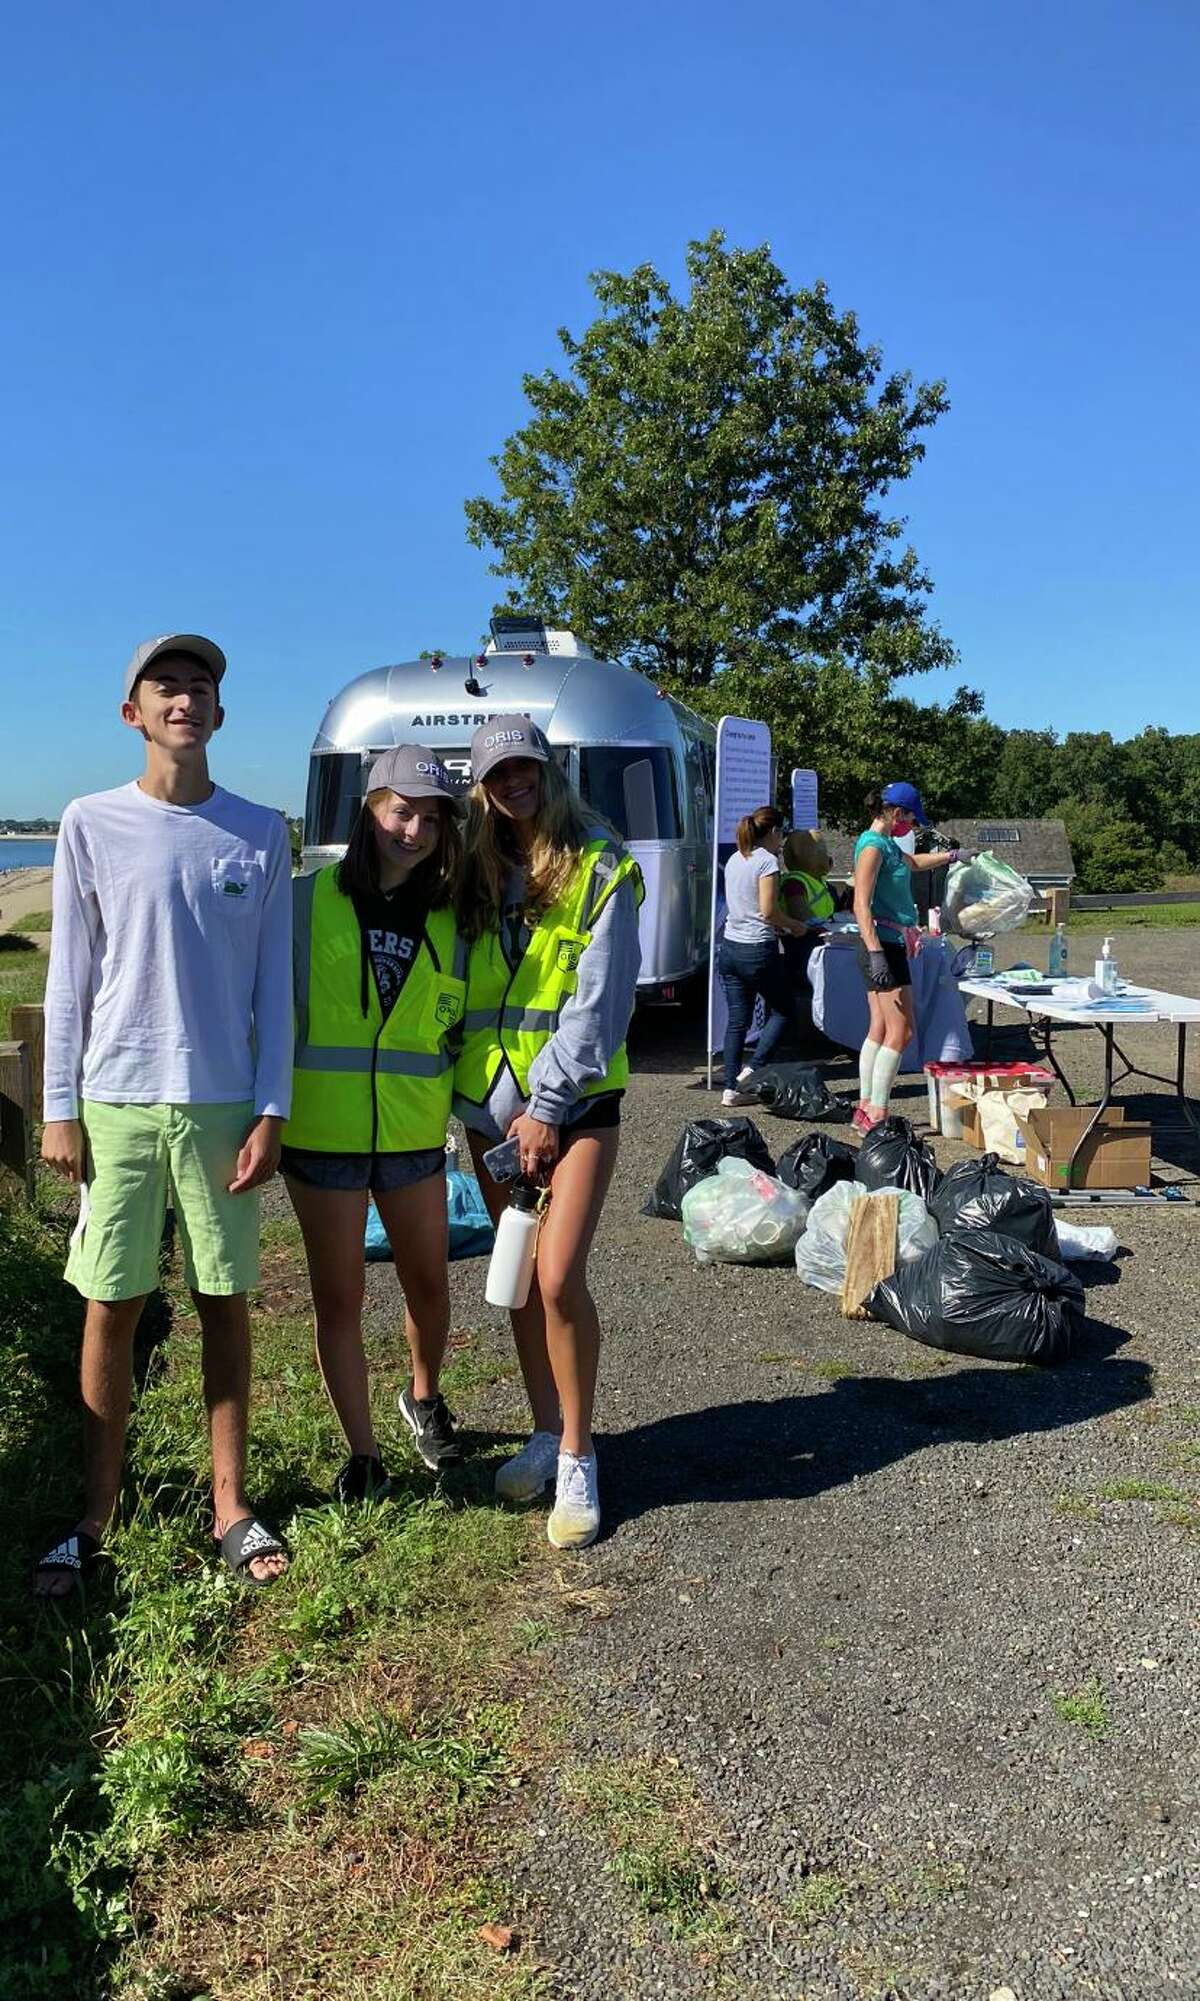 Volunteers cleaned 2.5 miles of beach at Sherwood Island State Park in Westport on Sept. 25, 2021 as part of a cleanup organized by Save Our Sound.